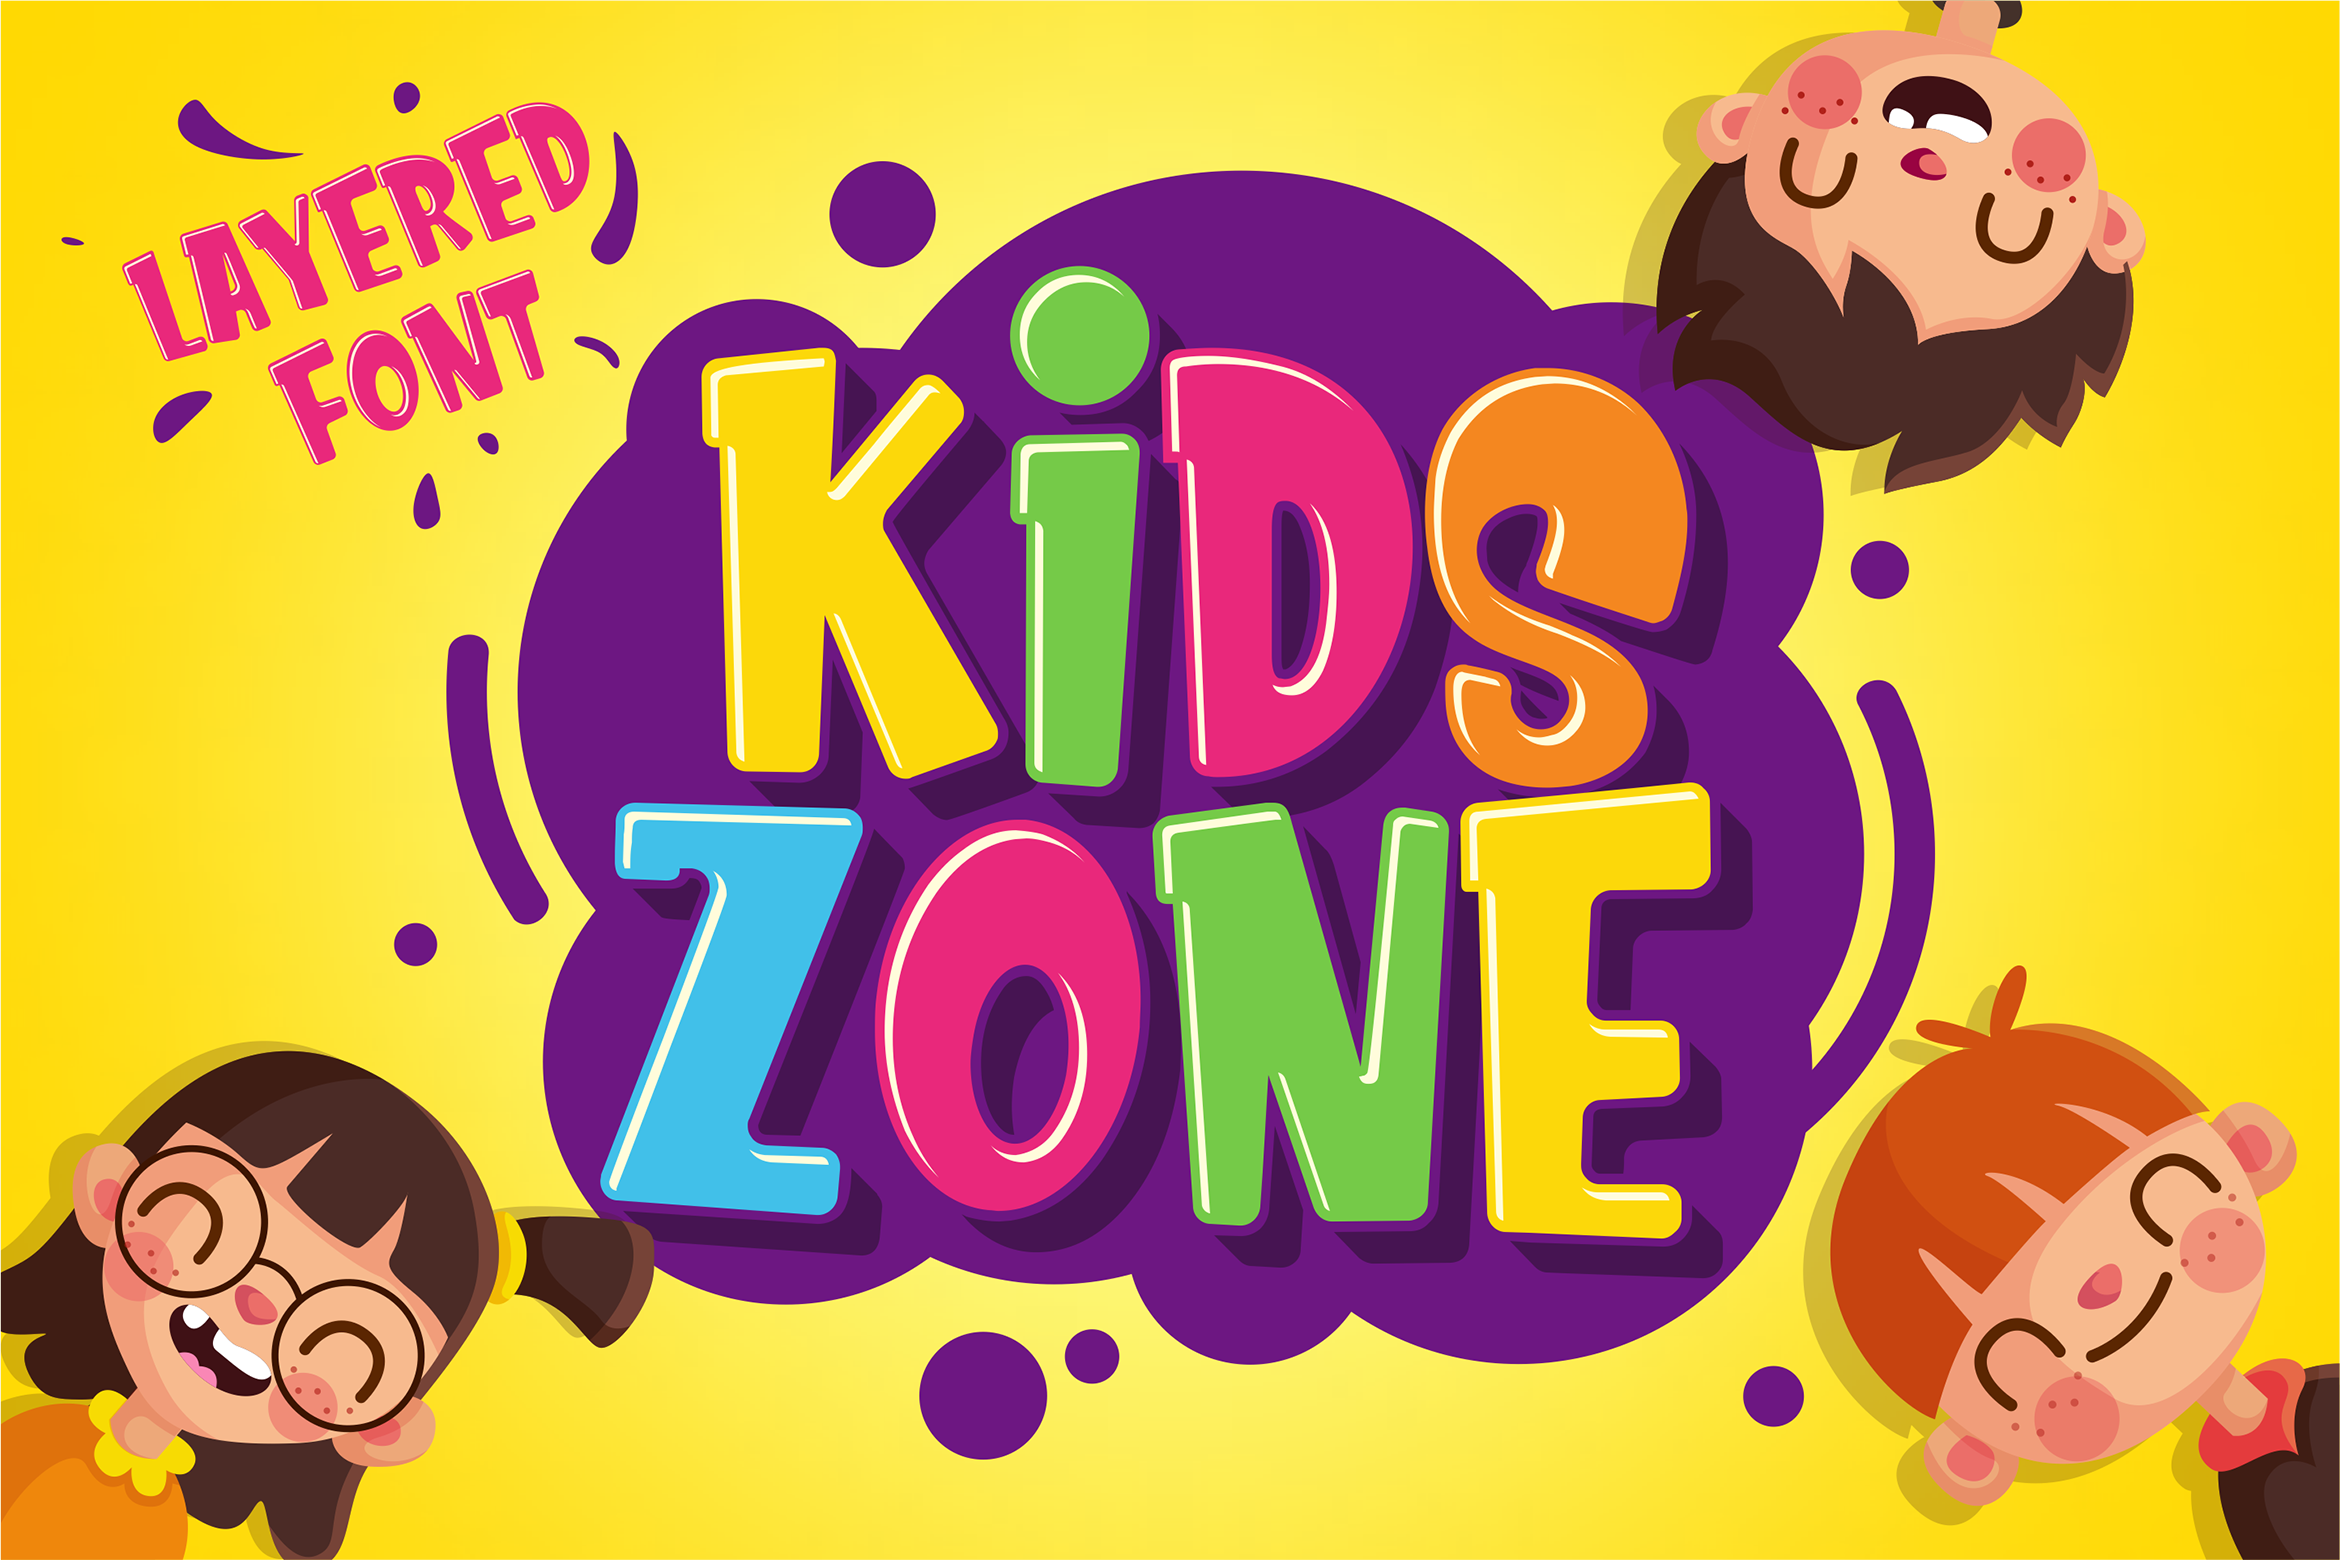 Kids Zone Layered Font by deemakdaksinas on Kid fonts